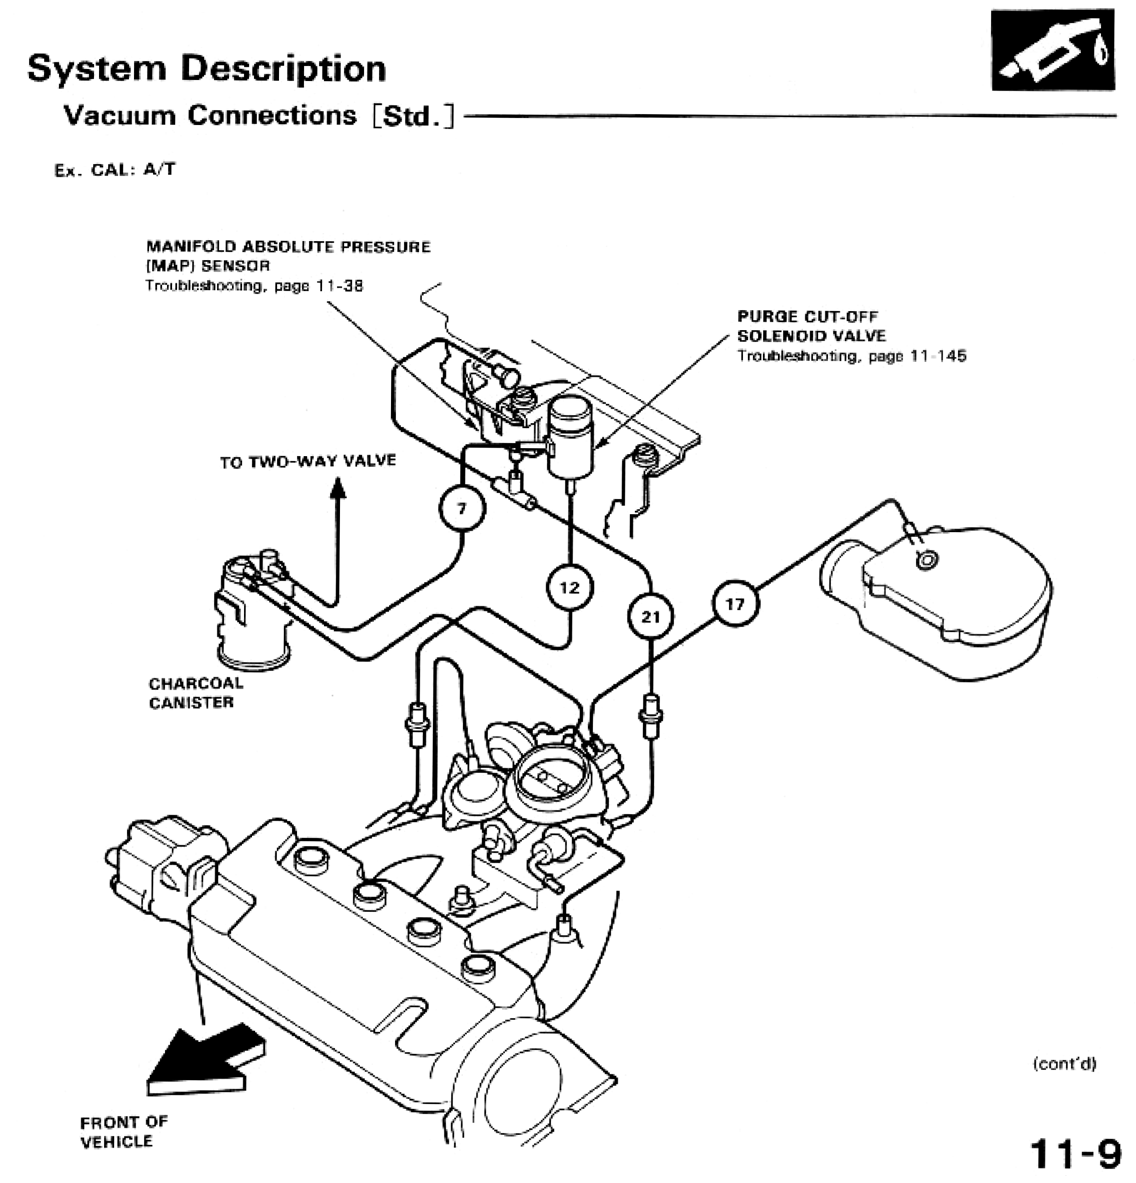 Honda Civic Vacuum Diagram 91. Honda. Auto Parts Catalog